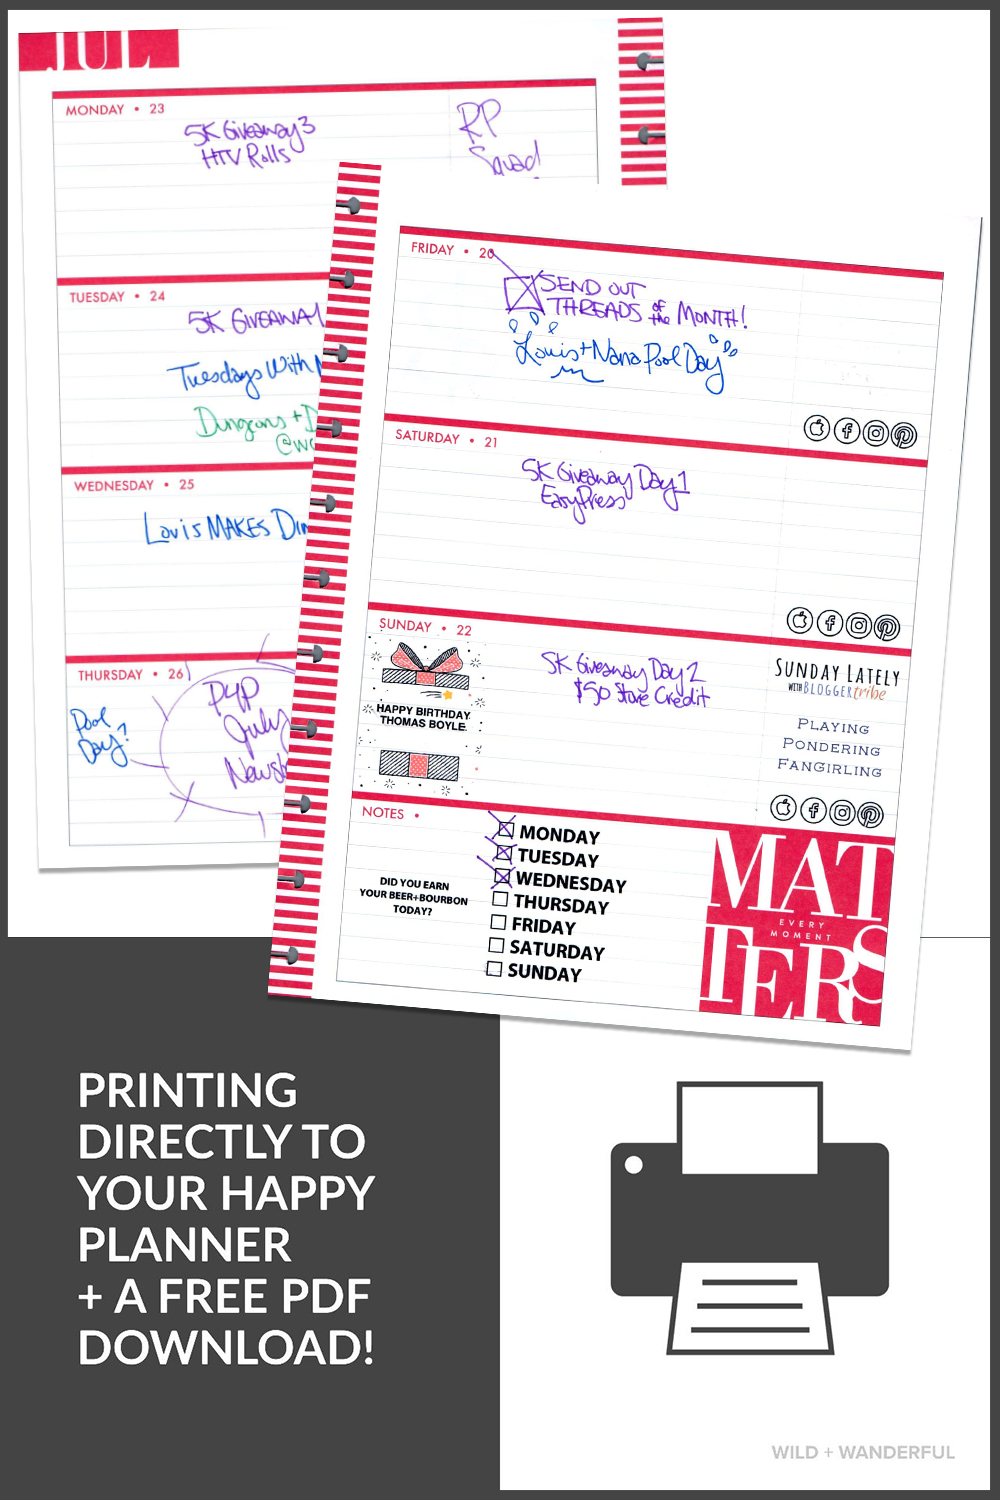 photograph about Discbound Planner Pages Printable identified as Print Right upon Your Delighted Planner + Totally free PDF Documents!